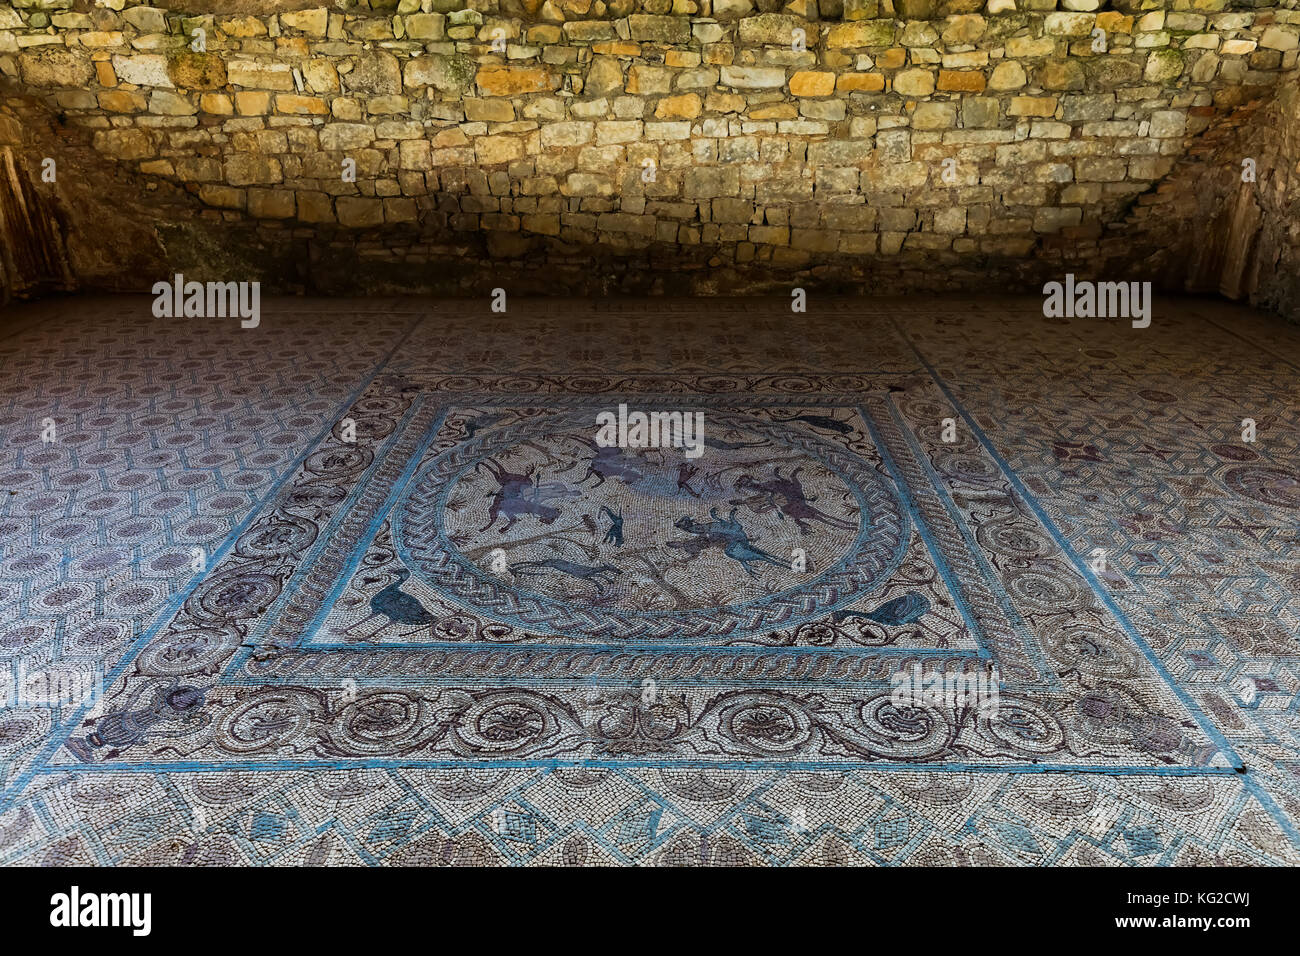 Ancient Roman mosaic in Conimbriga, one of the largest and the best preserved Roman settlements excavated in Portugal - Stock Image